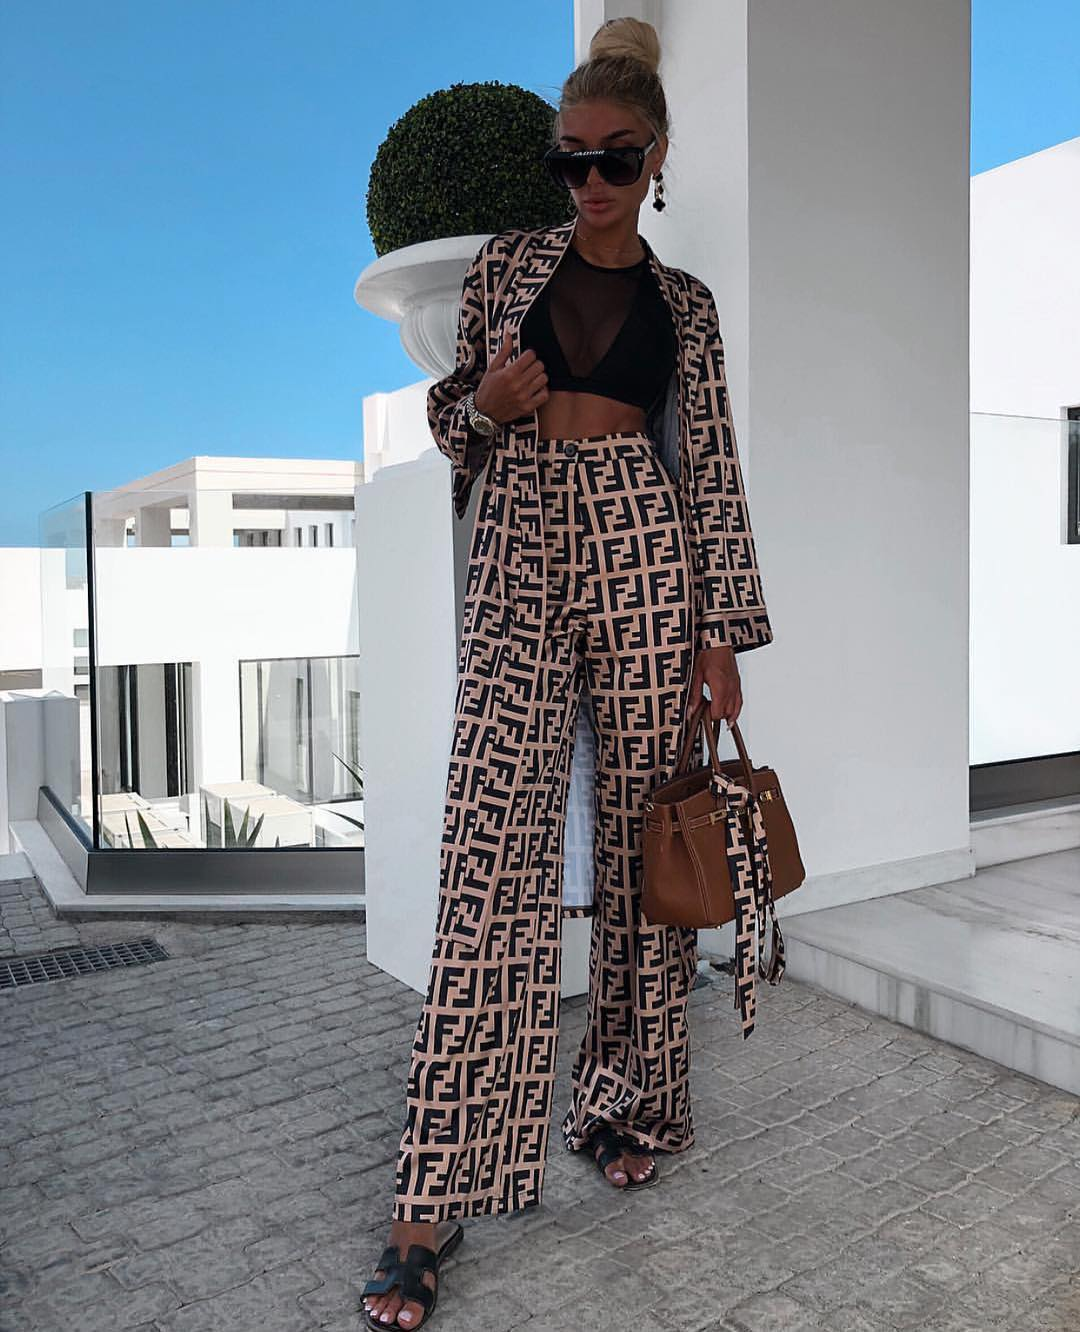 Printed Pantsuit With Wide Pants For Summer Vacation 2019